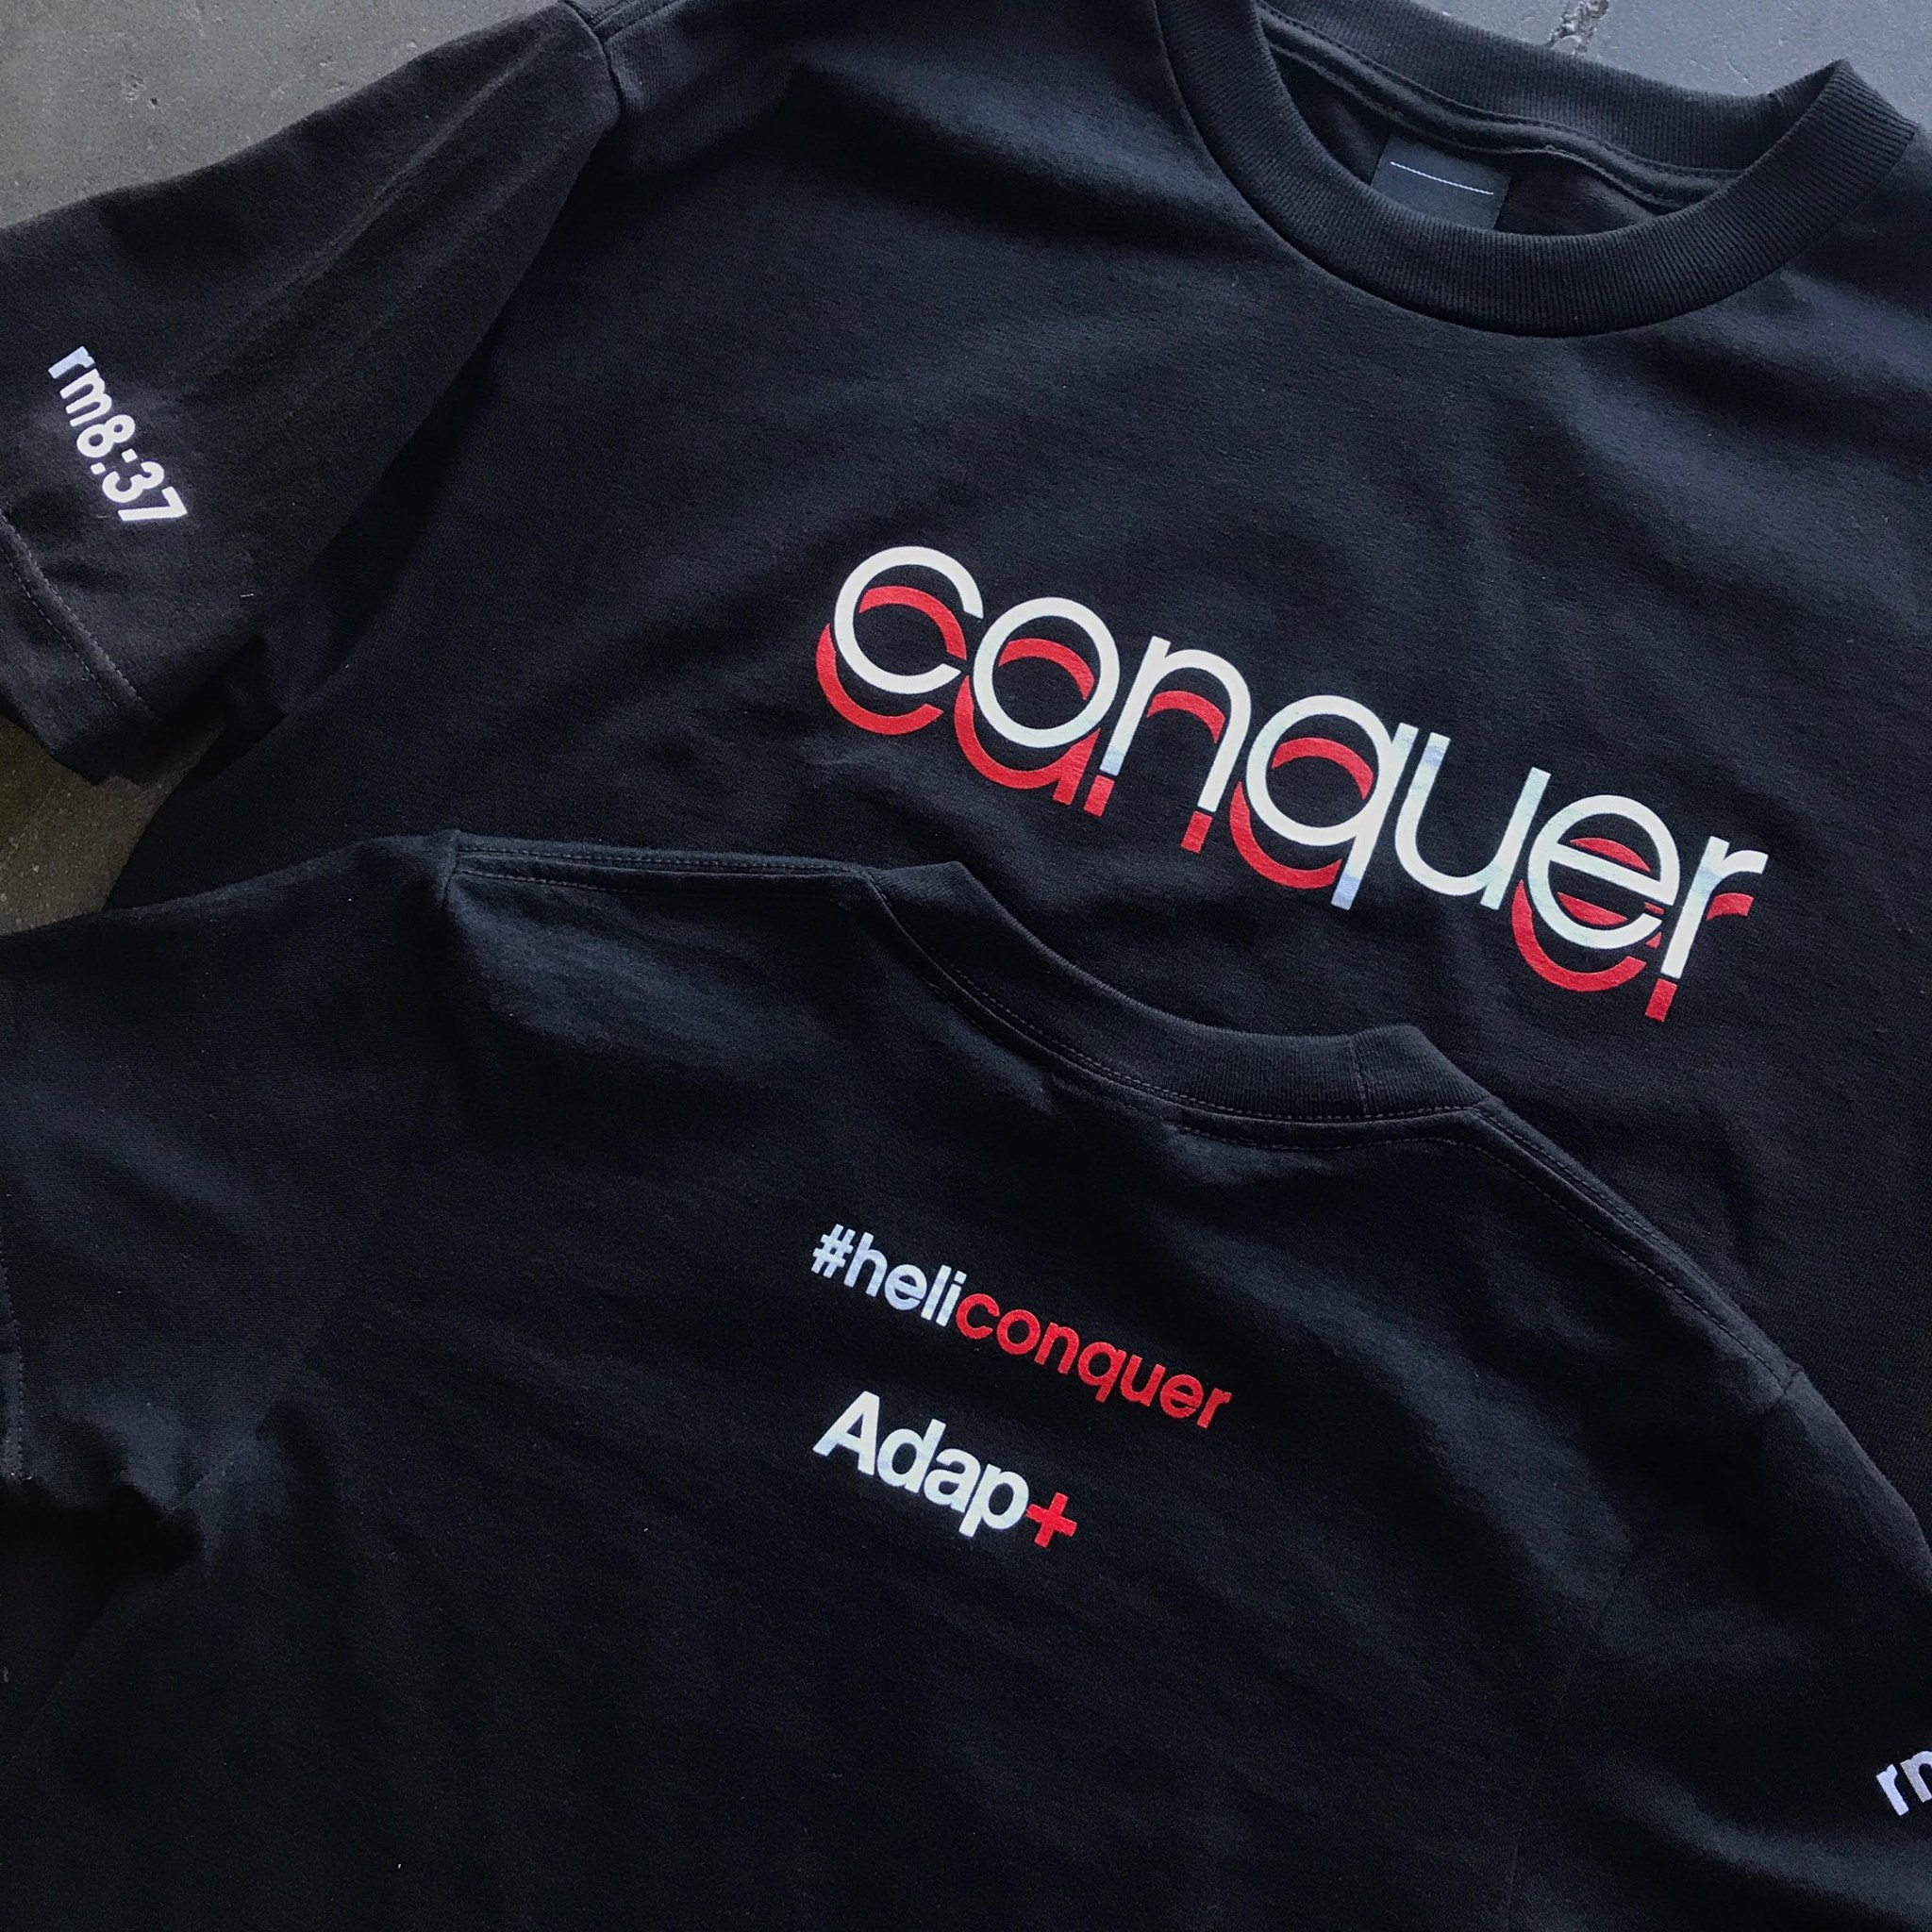 10 Helicon Conquer shirts.jpg